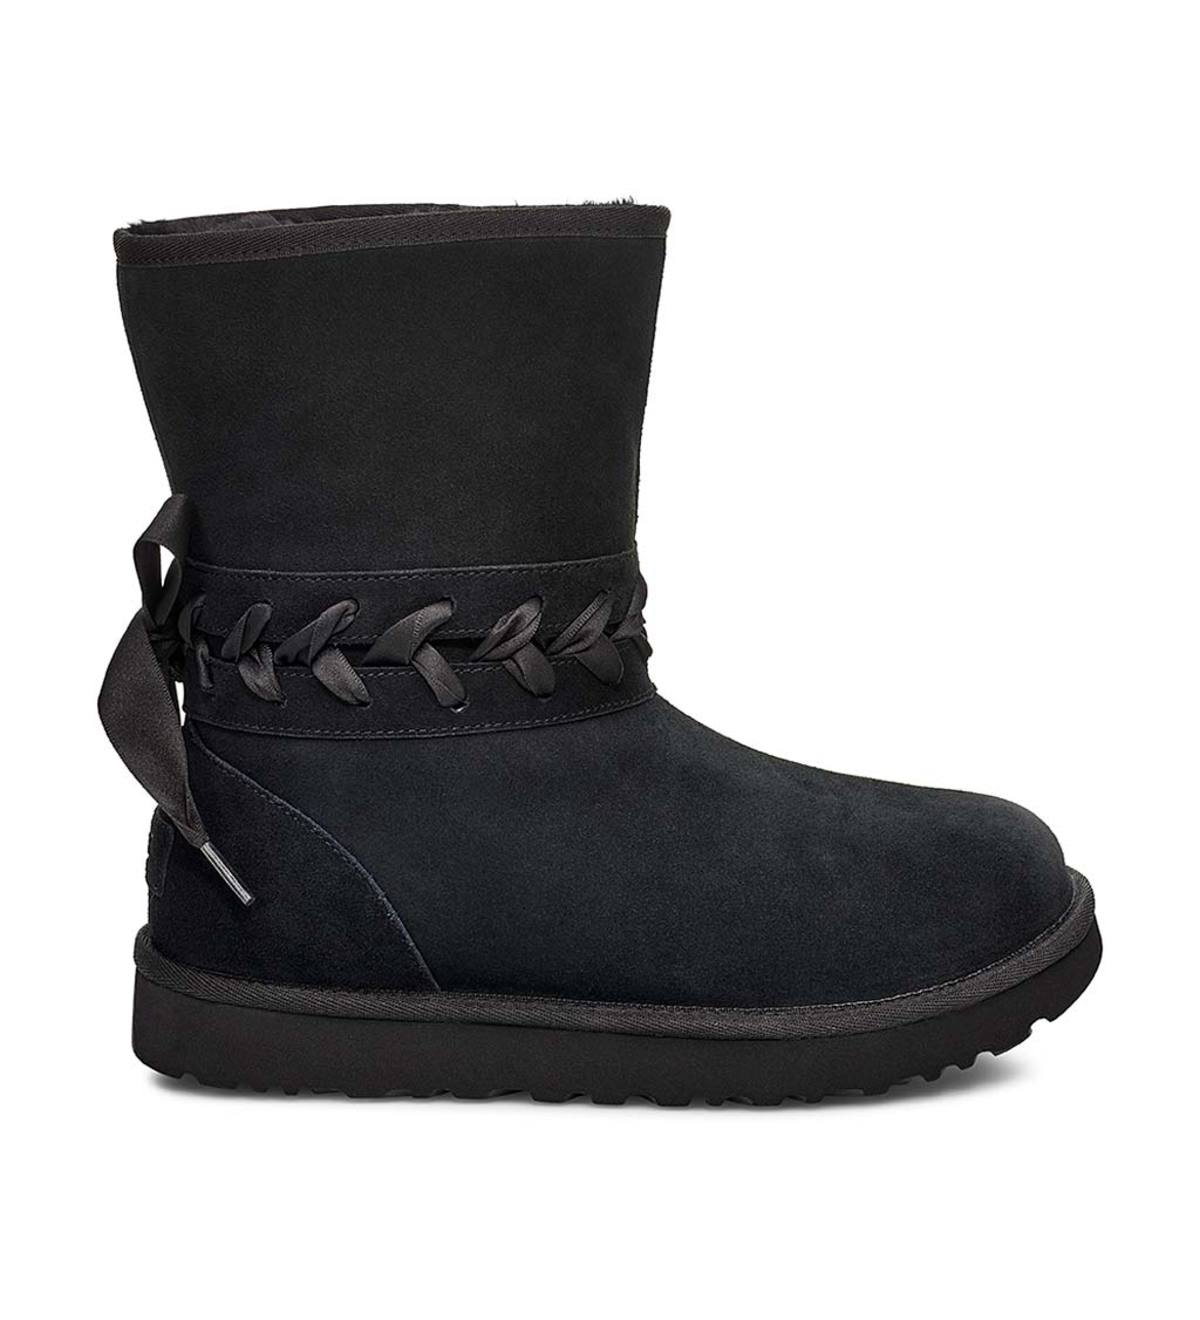 UGG Classic Lace Short Boots - Black